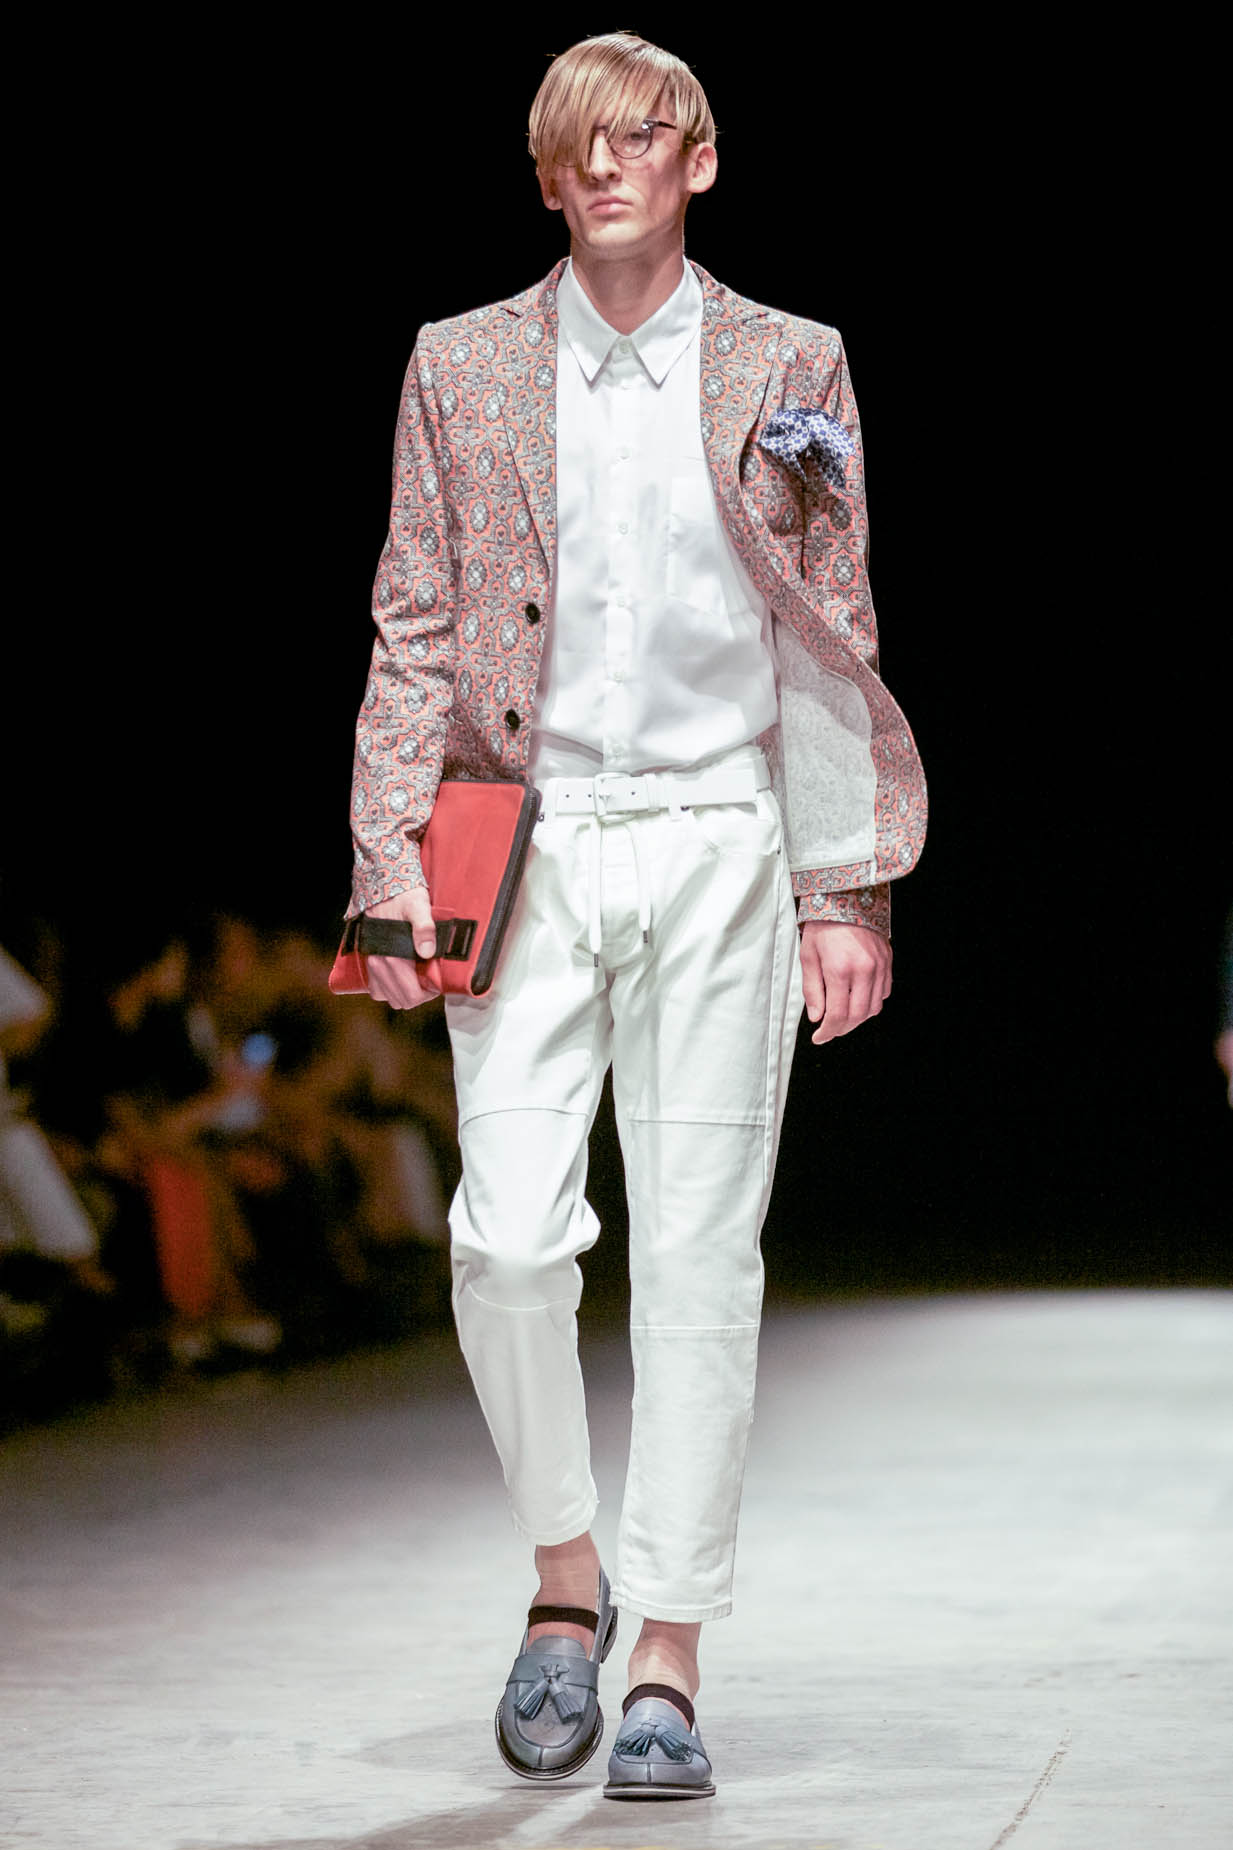 Andrea Pompilio Spring Summer 2013 Men's Collection Pitti Immagine Uomo Fashion Show